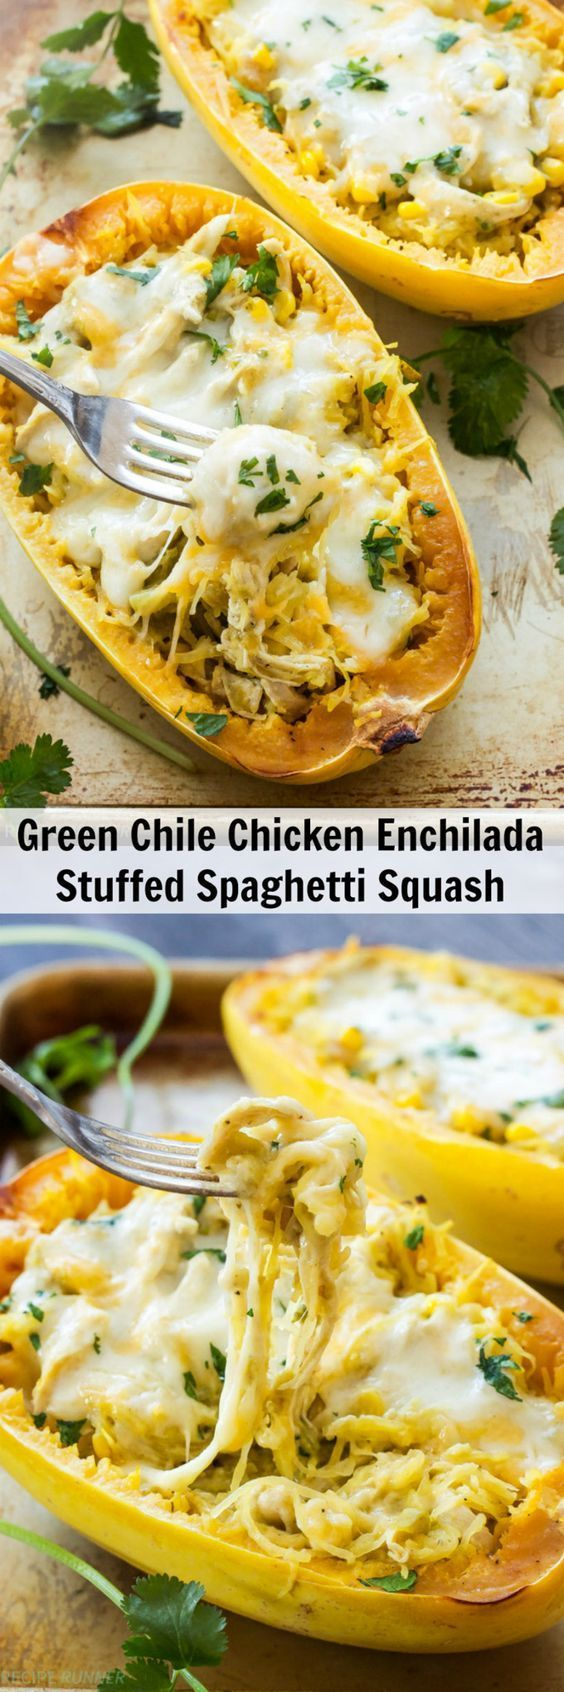 Green Chile Chicken Enchilada Stuffed Spaghetti Squash  You won't miss the tortillas carbs or time spent rolling up the enchiladas when you make this Green Chile Chicken Enchilada Stuffed Spaghetti Squash!